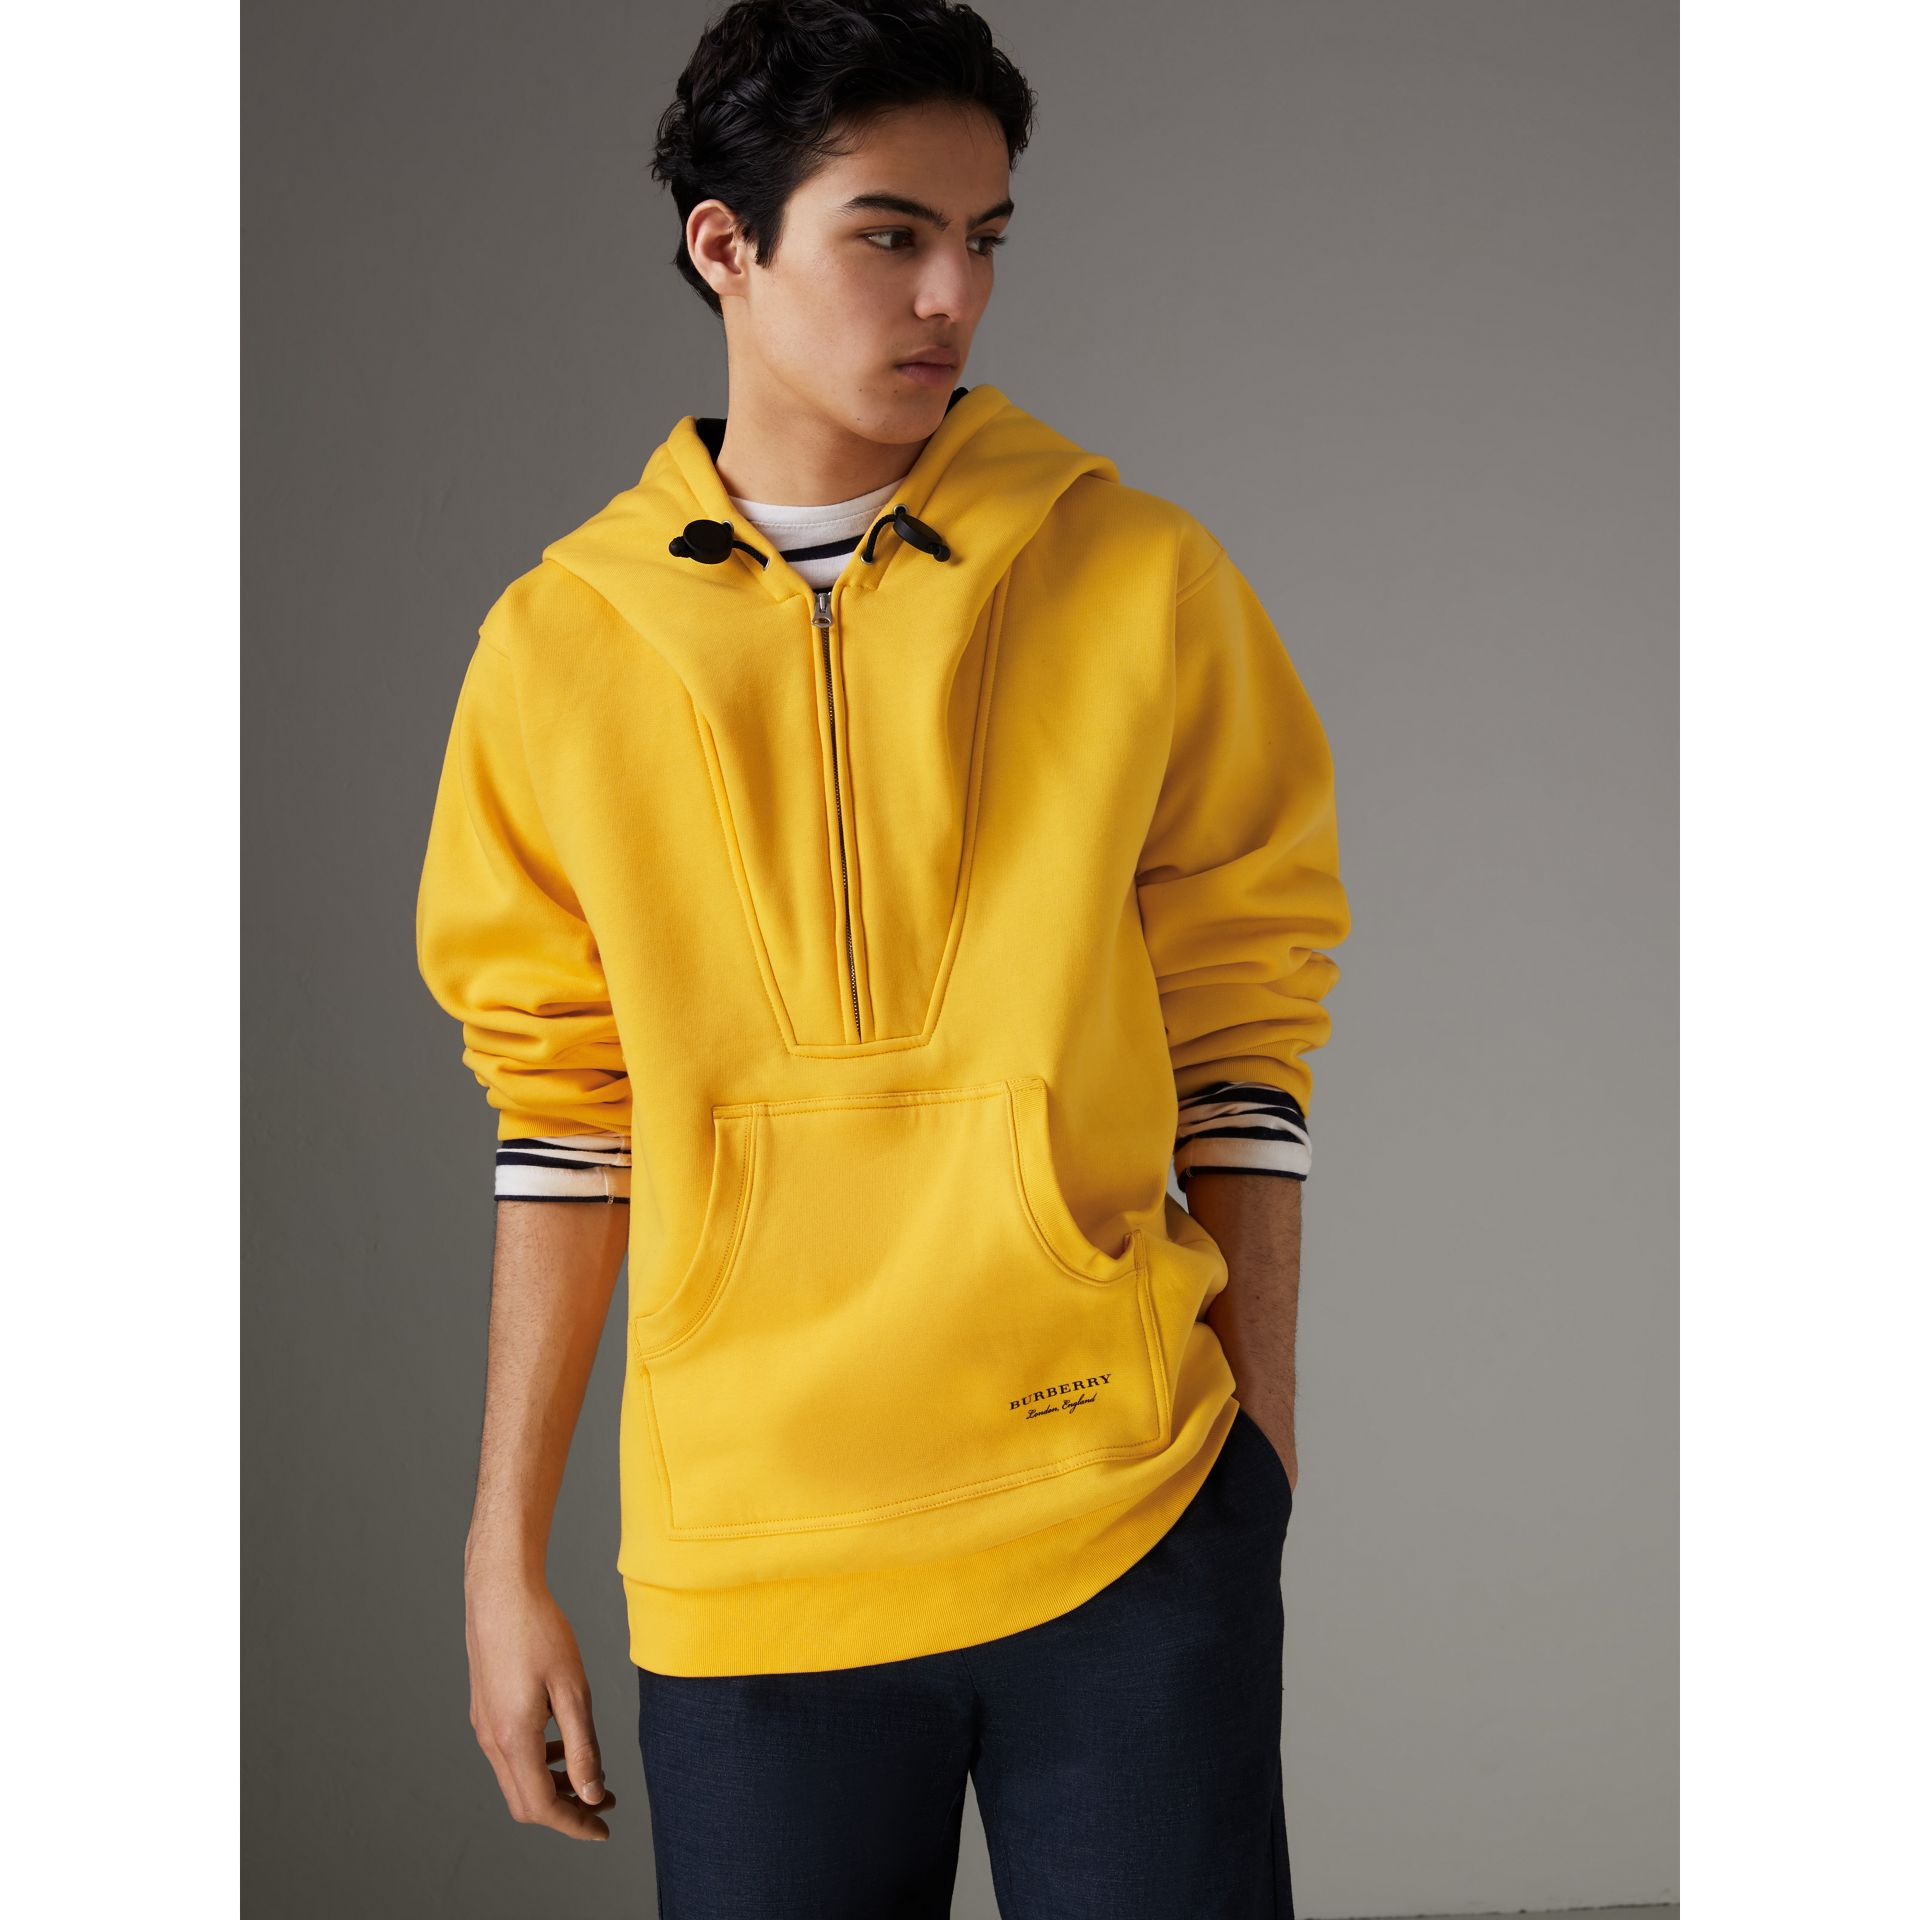 Oversized Sweatshirt Half-zip Hoodie in Bright Yellow - Men | Burberry United Kingdom - gallery image 5